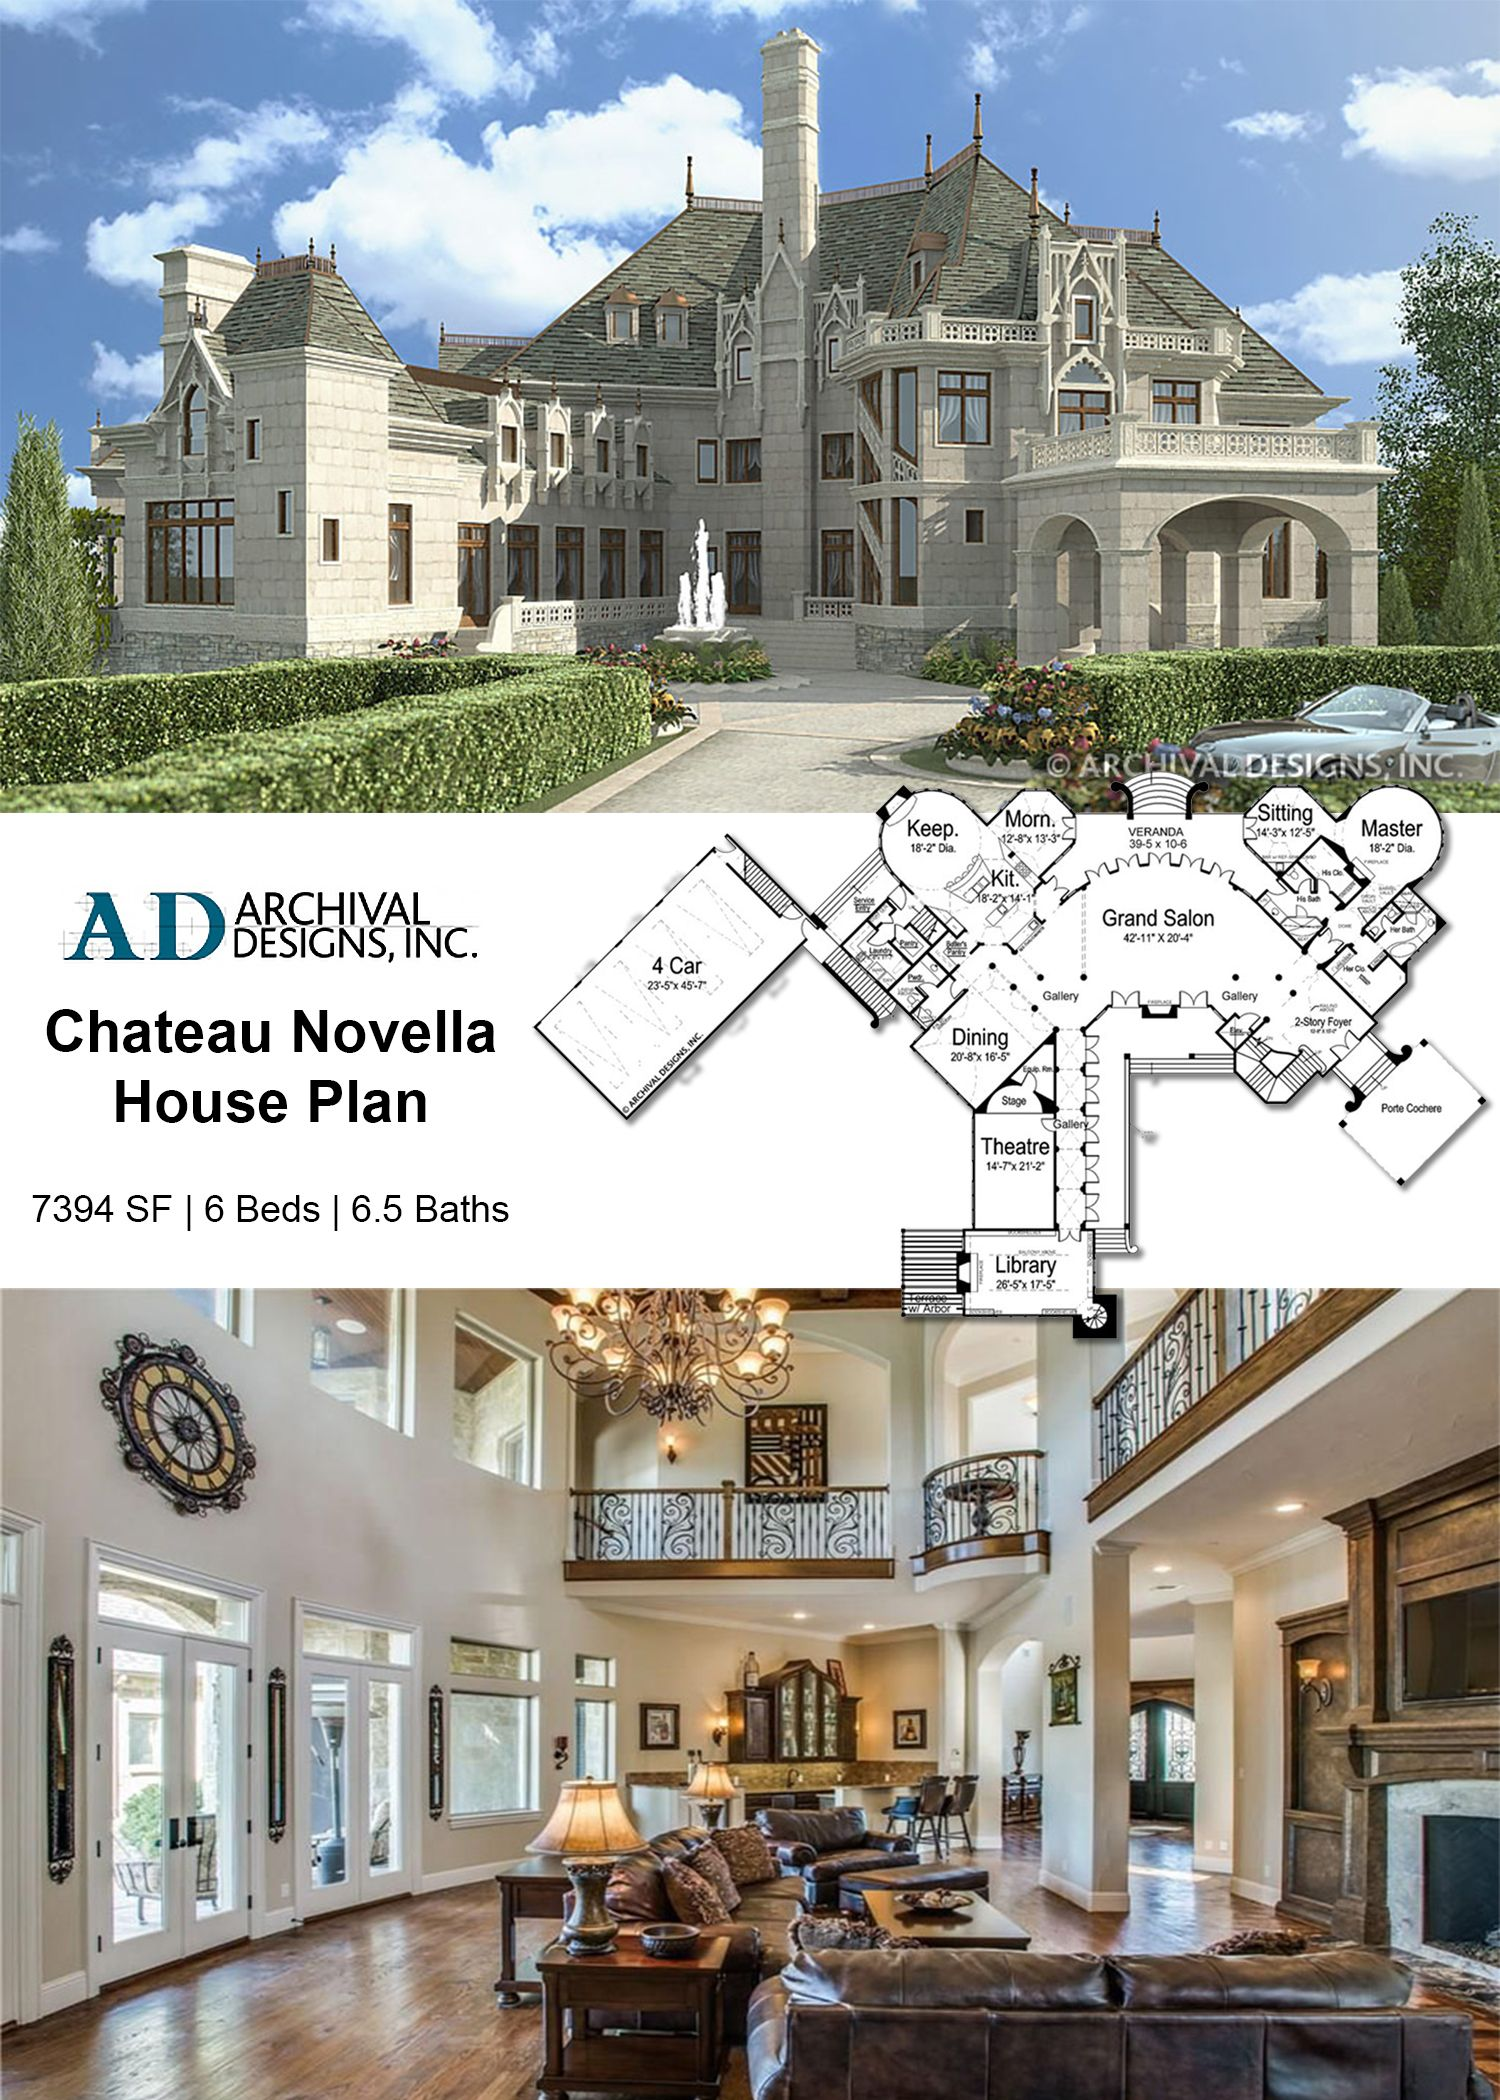 Modern Castle House : modern, castle, house, Chateau, Novella, House, Castle, Plans,, Plans, Mansion,, Luxury